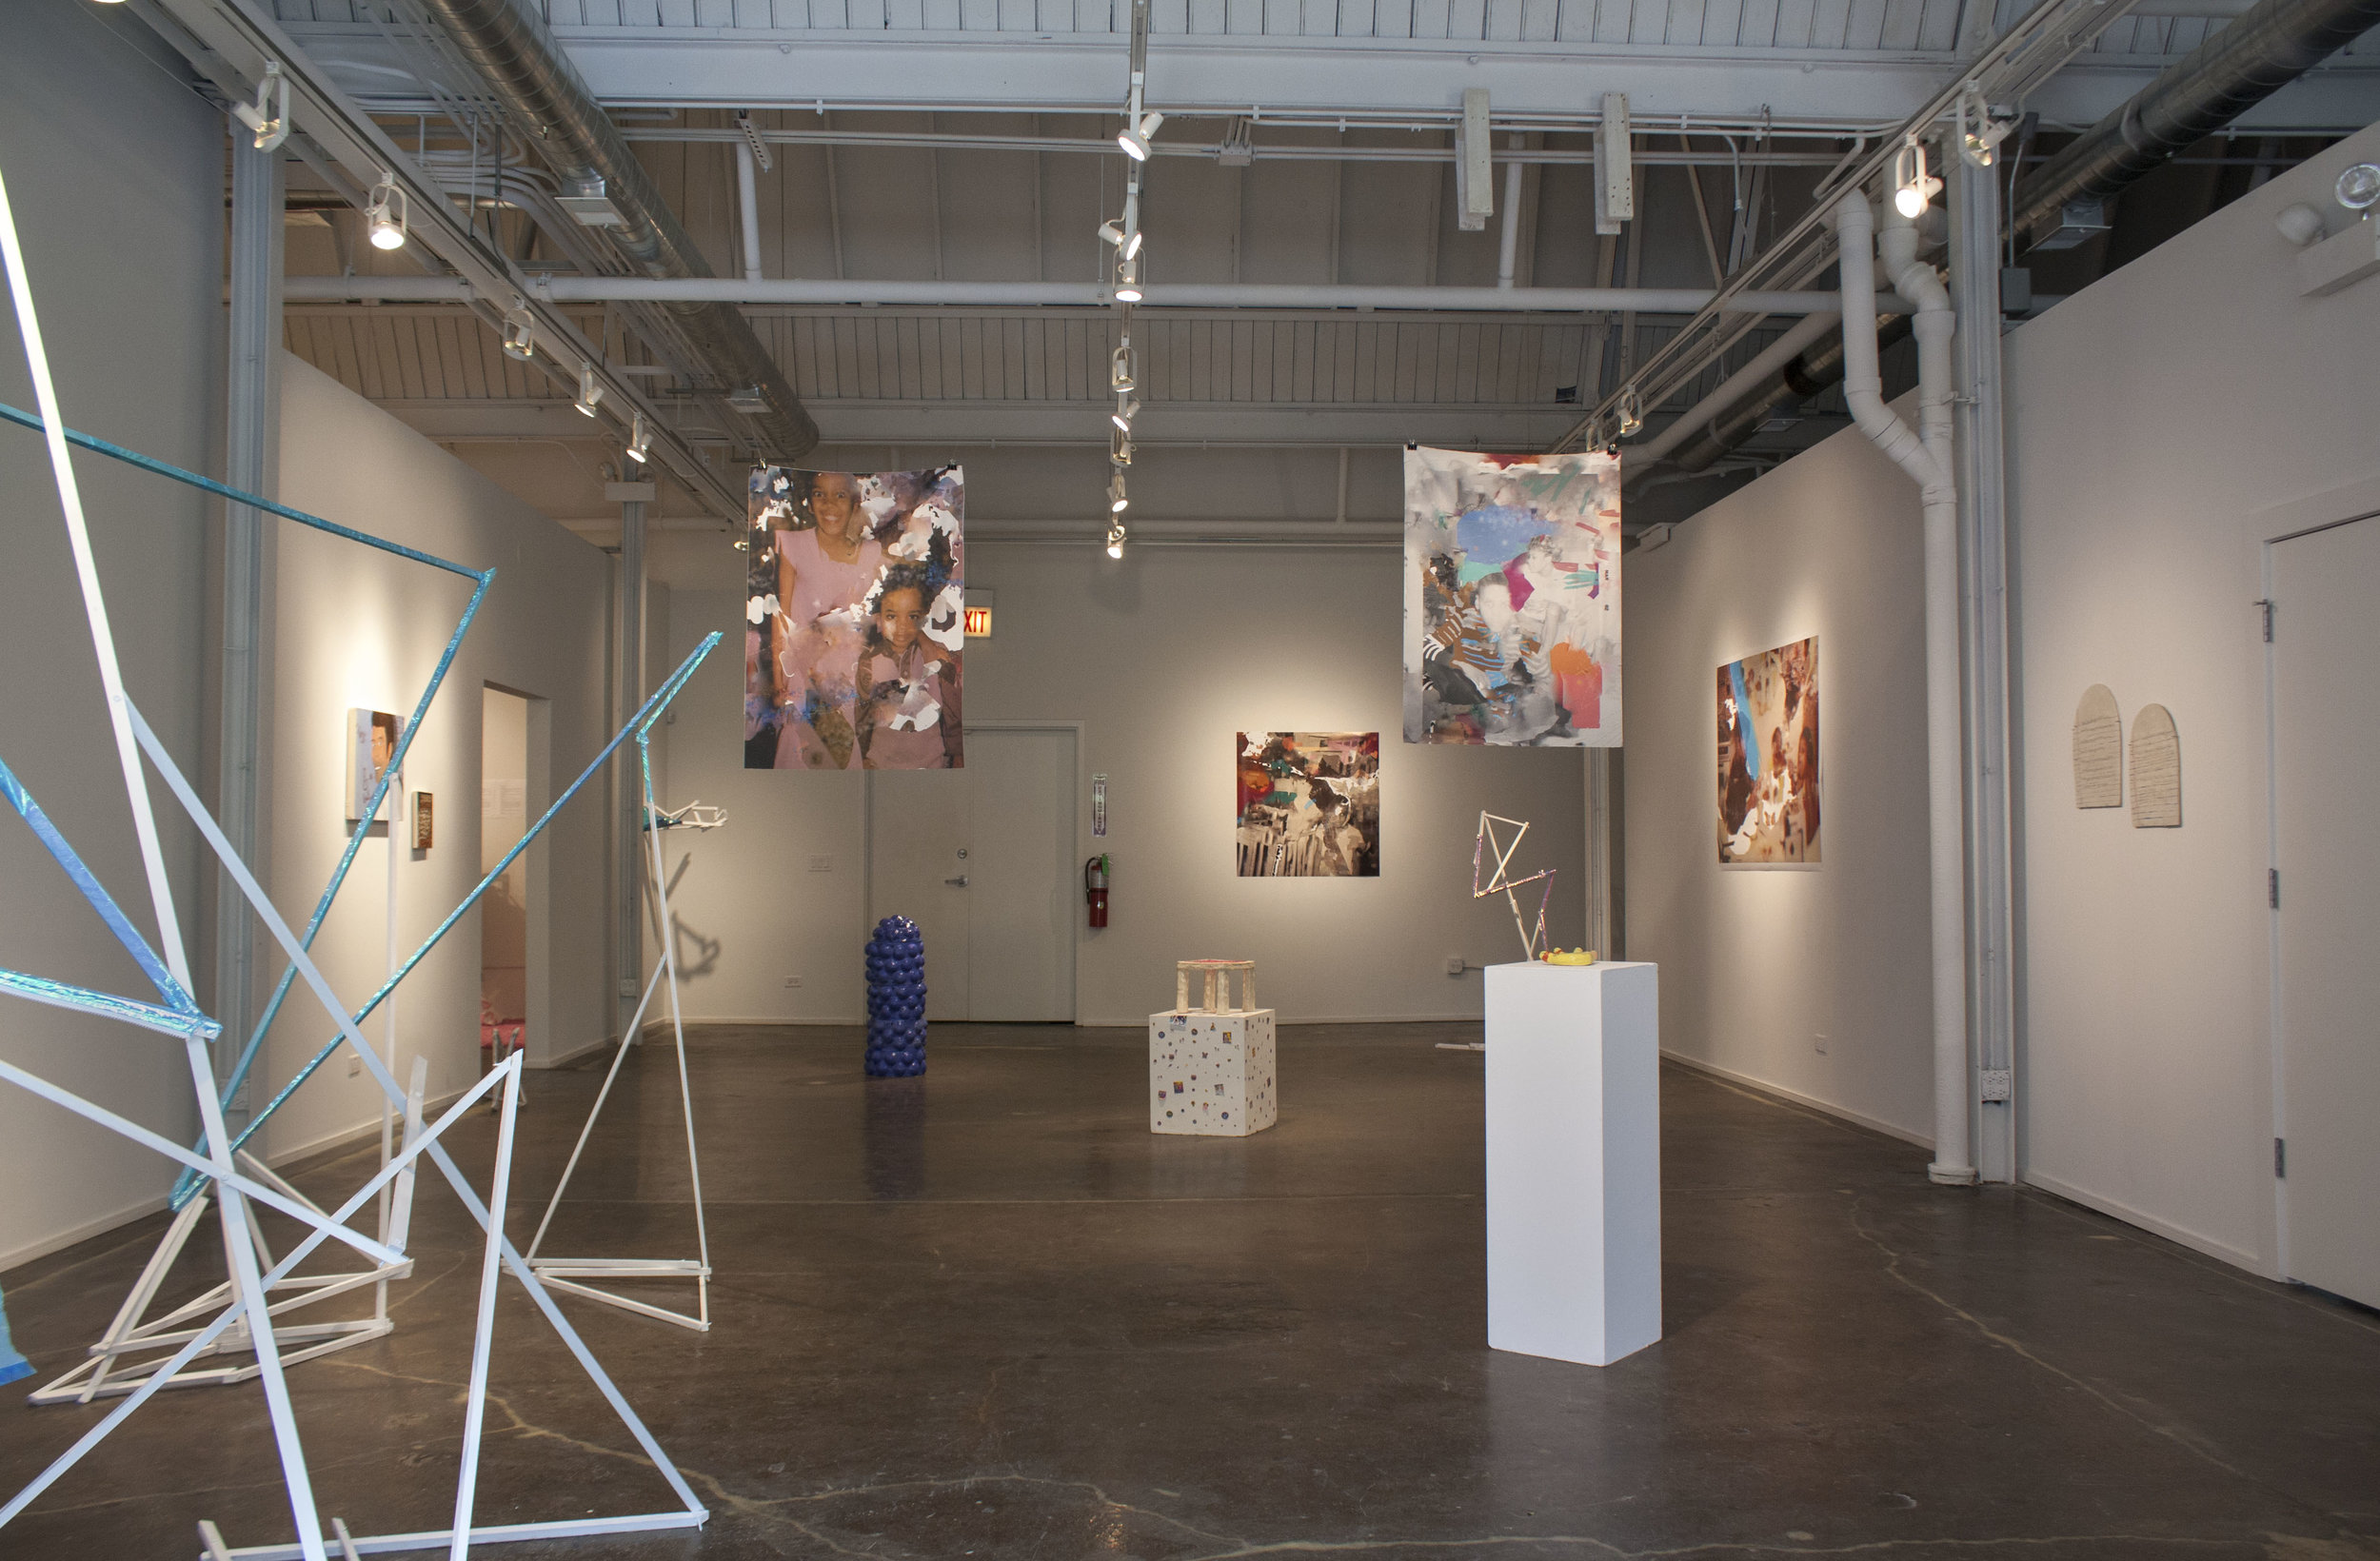 Somewhere Behind Us  (2018), an exhibition with Chicago Artists Coalition's HATCH Projects also featuring the work of Andrea Coleman and Erin Smego and curated by Jamillah Hinson.